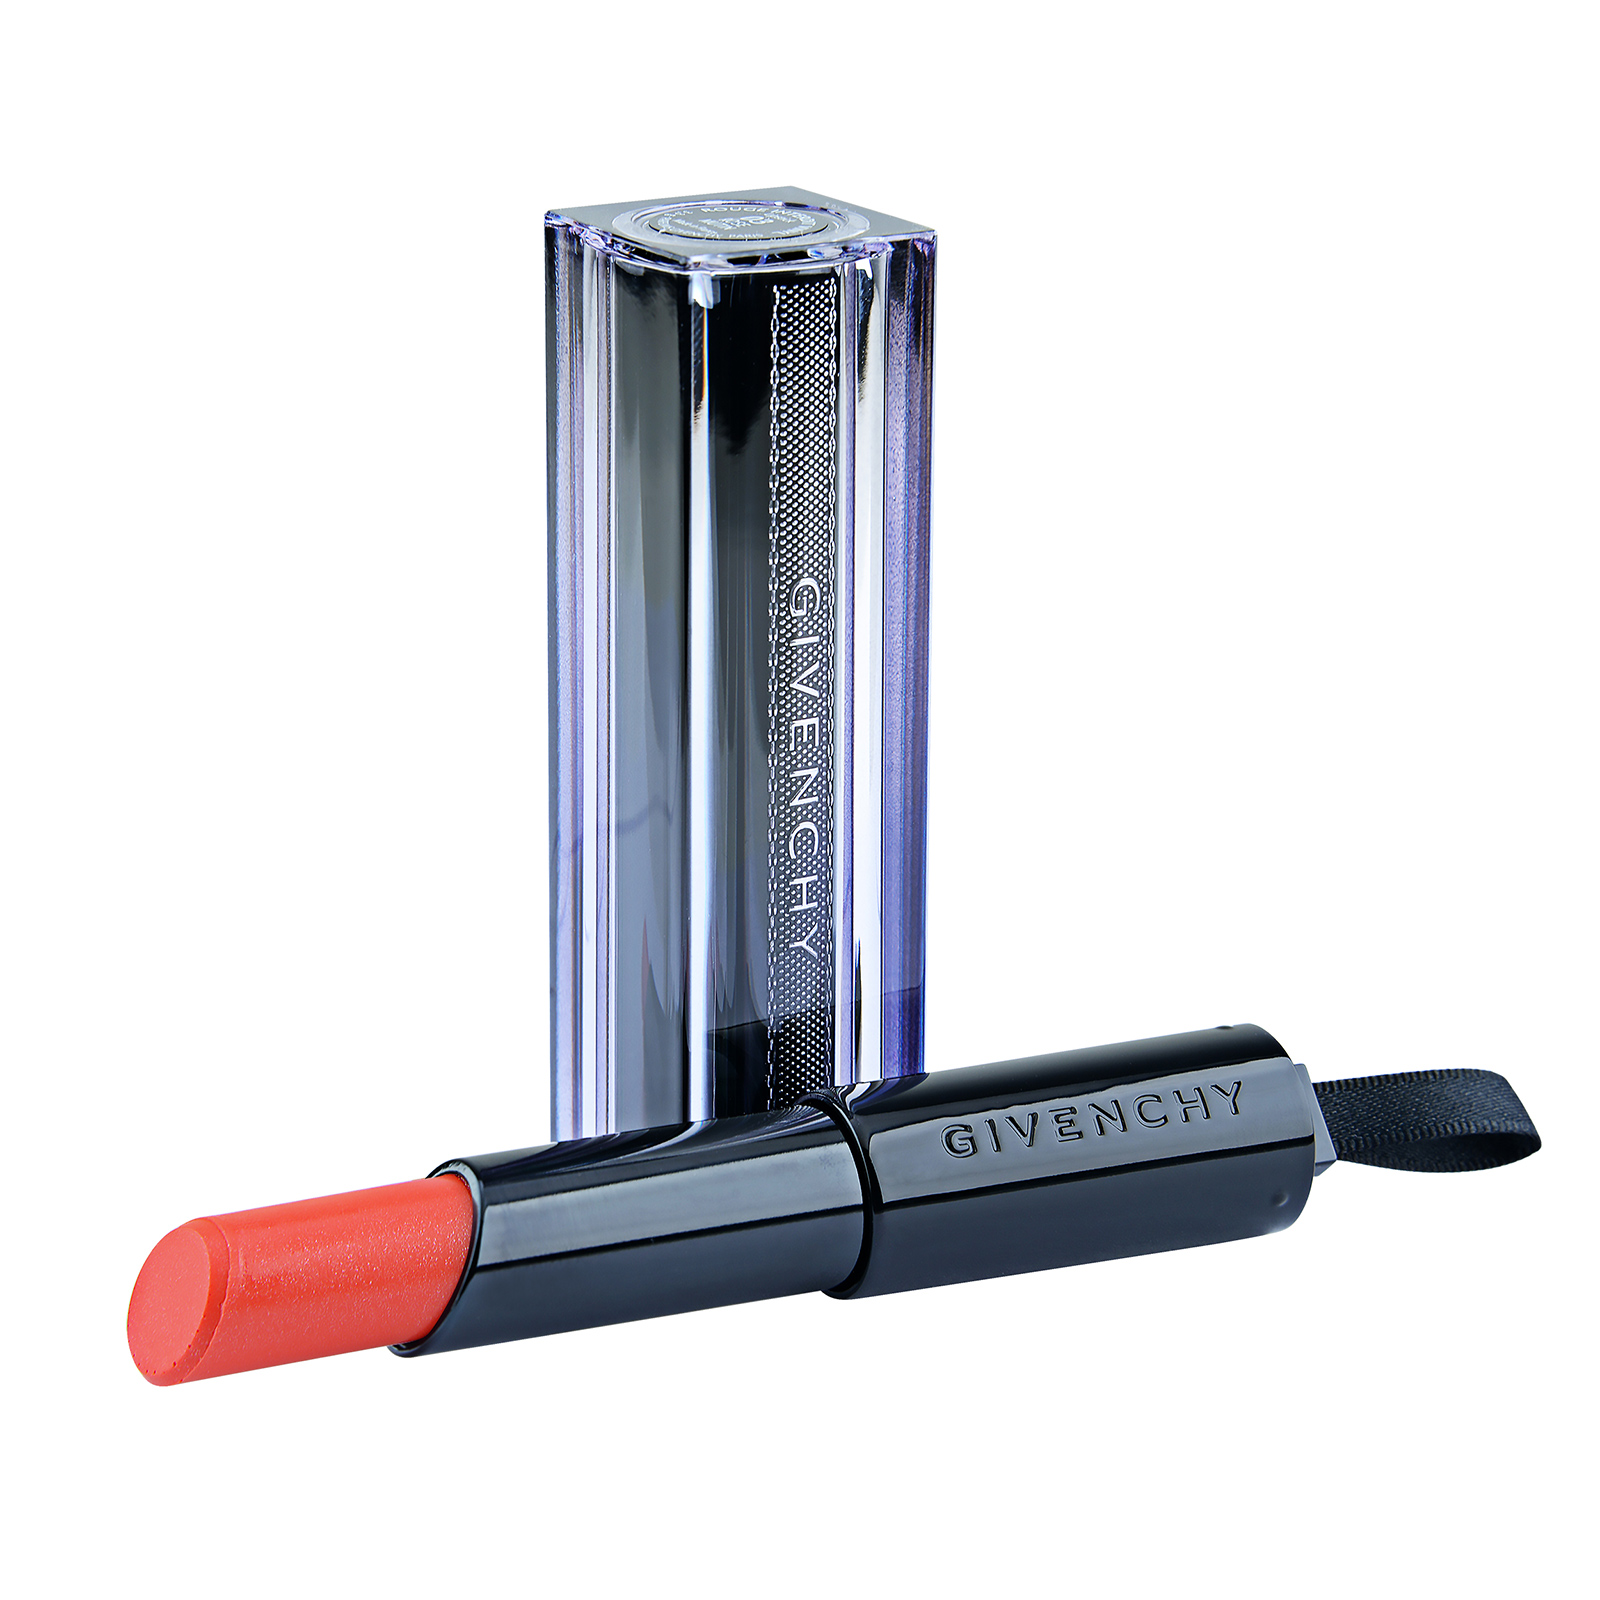 Givenchy  Rouge Interdit Vinyl Extreme Shine Lipstick Illicit Color 09 Corail Redoutable, 0.11oz, 3.3g